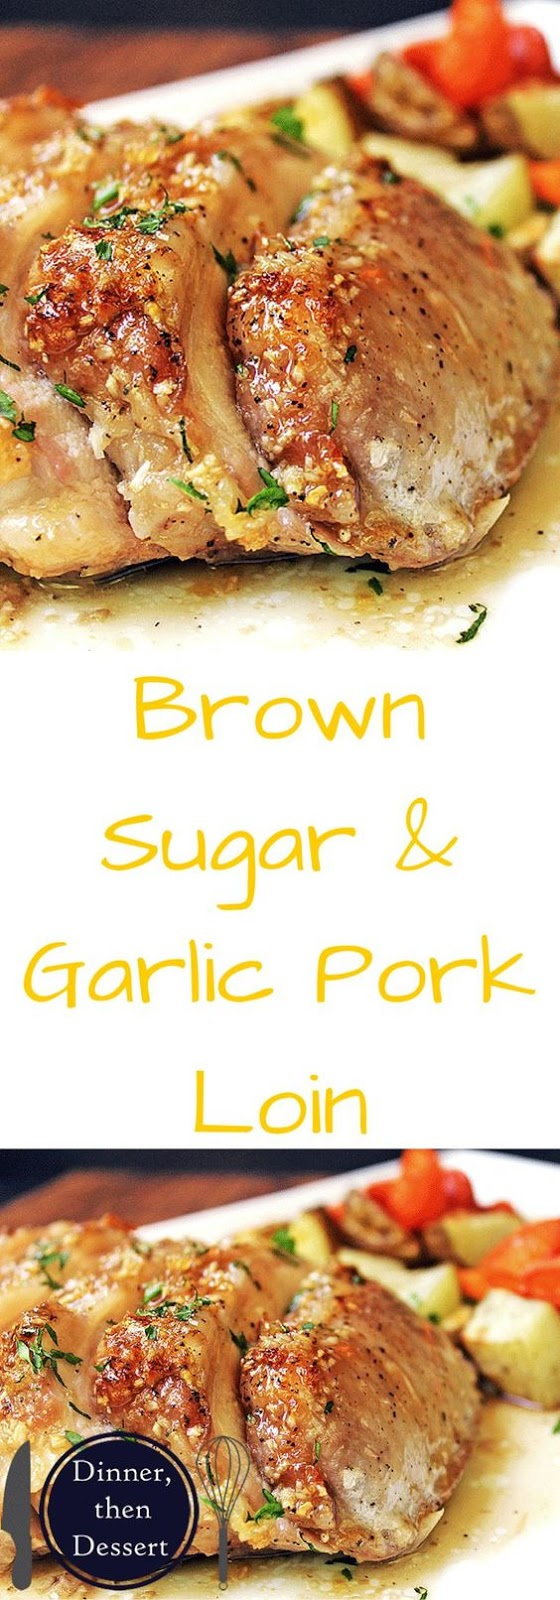 BROWN SUGAR GARLIC PORK WITH CARROTS & POTATOES #BROWN #SUGAR #GARLIC #PORK #CARROTS #POTATOES   #DESSERTS #HEALTHYFOOD #EASY_RECIPES #DINNER #LAUCH #DELICIOUS #EASY #HOLIDAYS #RECIPE #SPECIAL_DIET #WORLD_CUISINE #CAKE #GRILL #APPETIZERS #HEALTHY_RECIPES #DRINKS #COOKING_METHOD #ITALIAN_RECIPES #MEAT #VEGAN_RECIPES #COOKIES #PASTA #FRUIT #SALAD #SOUP_APPETIZERS #NON_ALCOHOLIC_DRINKS #MEAL_PLANNING #VEGETABLES #SOUP #PASTRY #CHOCOLATE #DAIRY #ALCOHOLIC_DRINKS #BULGUR_SALAD #BAKING #SNACKS #BEEF_RECIPES #MEAT_APPETIZERS #MEXICAN_RECIPES #BREAD #ASIAN_RECIPES #SEAFOOD_APPETIZERS #MUFFINS #BREAKFAST_AND_BRUNCH #CONDIMENTS #CUPCAKES #CHEESE #CHICKEN_RECIPES #PIE #COFFEE #NO_BAKE_DESSERTS #HEALTHY_SNACKS #SEAFOOD #GRAIN #LUNCHES_DINNERS #MEXICAN #QUICK_BREAD #LIQUOR